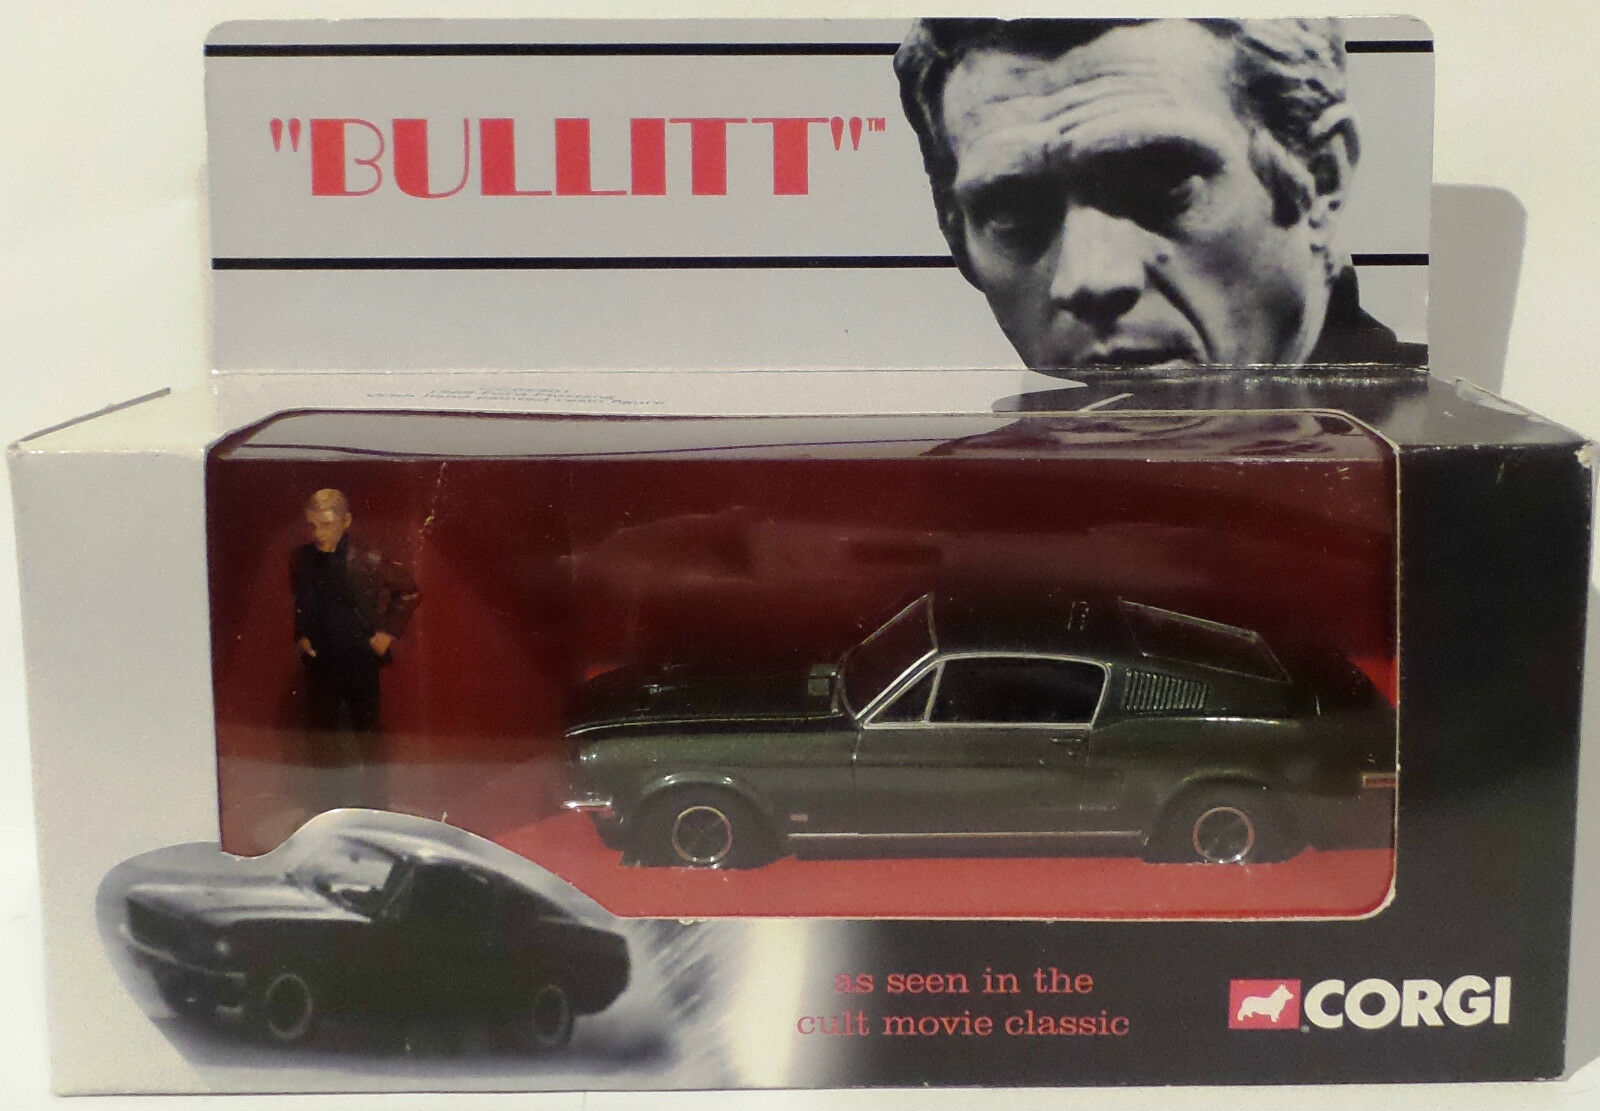 BULLITT   1968 MUSTANG DIECAST MODEL WITH LT. FRANK BULLITT RESIN FIGURE